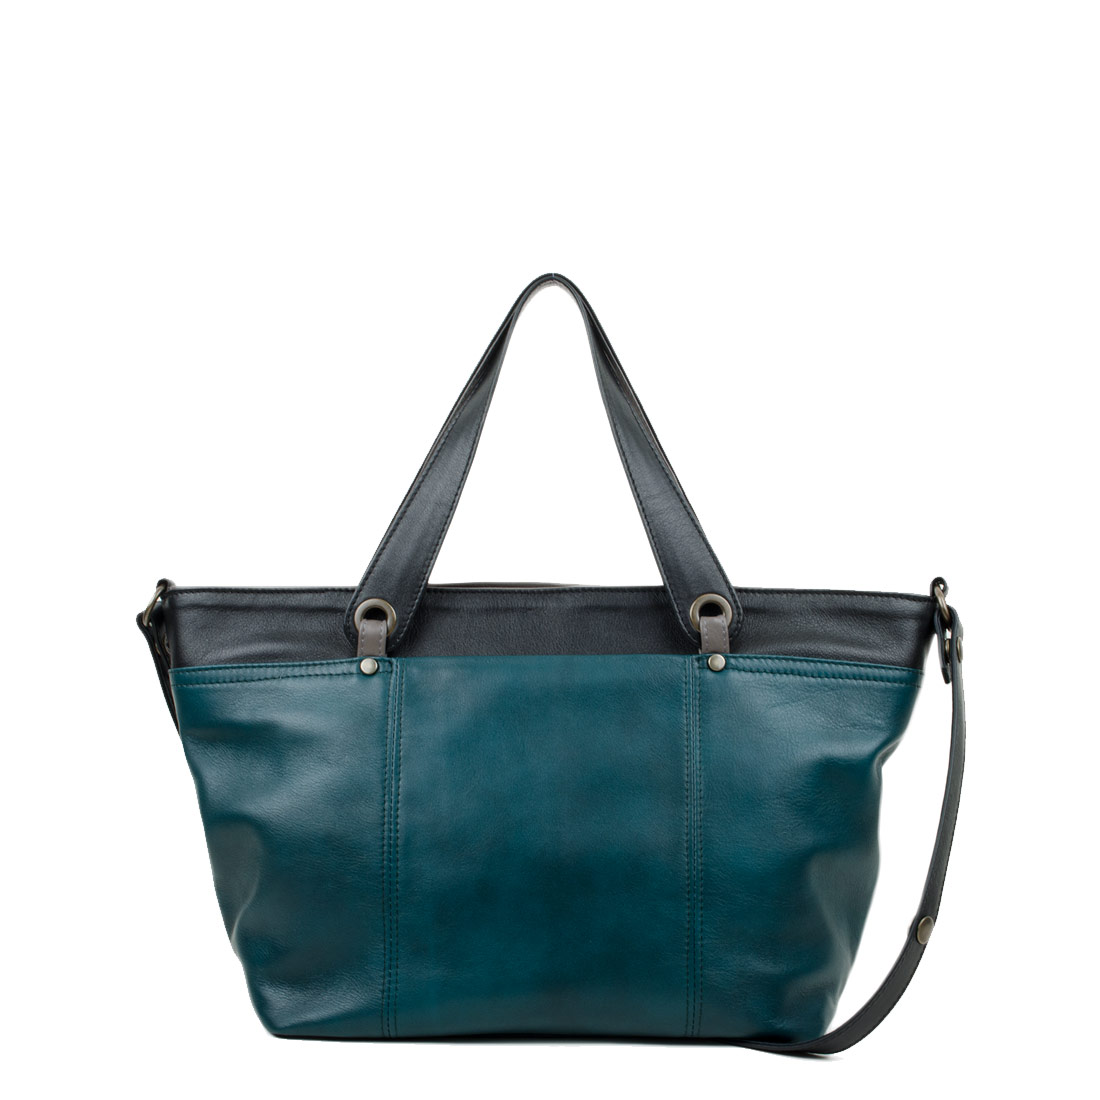 Lucy Teal with Black Leather Tote Bag